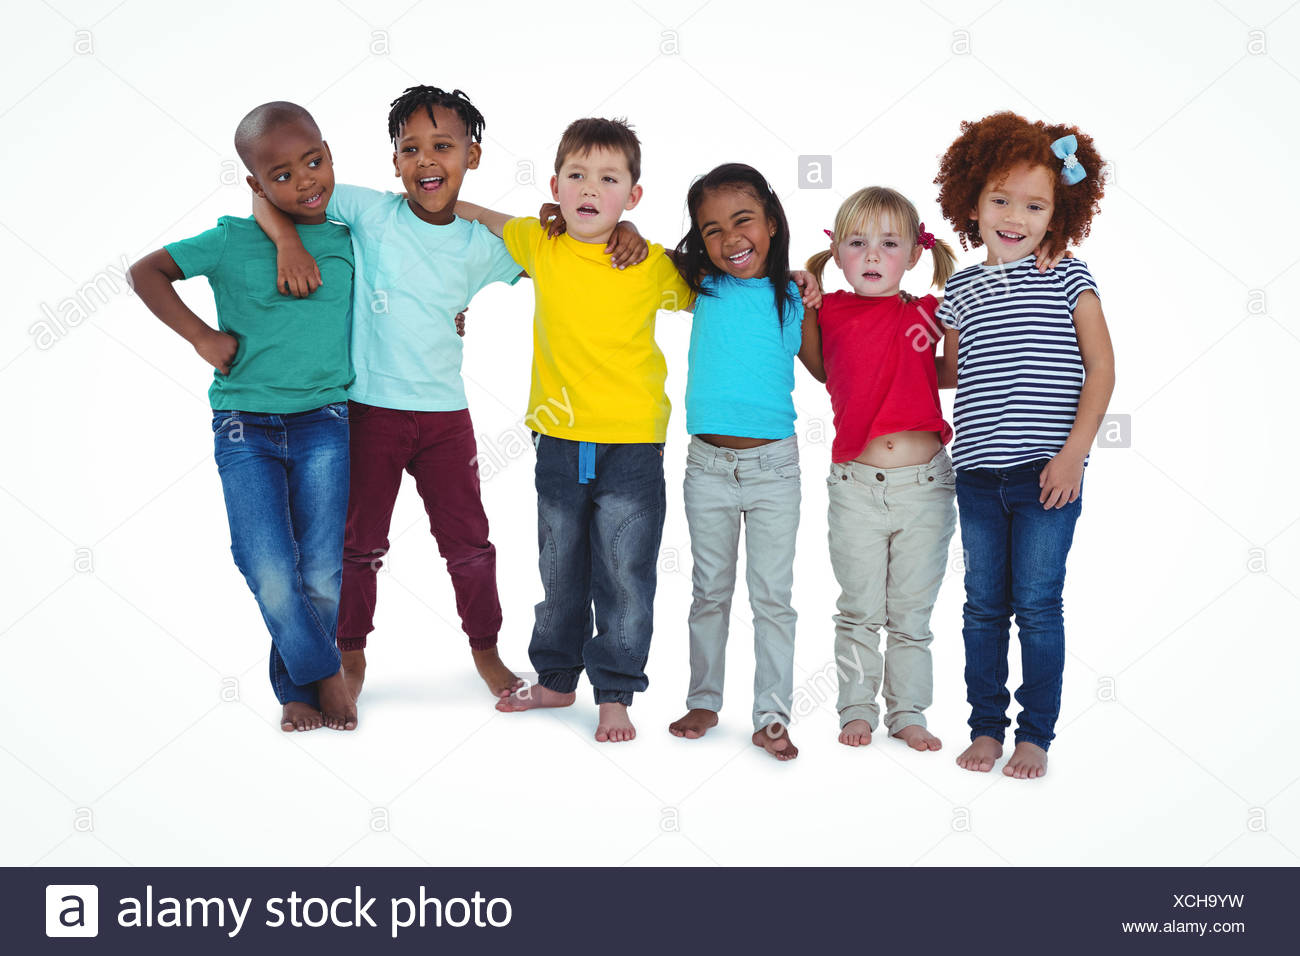 Les enfants pieds nus mignon hugging and looking at camera Photo Stock